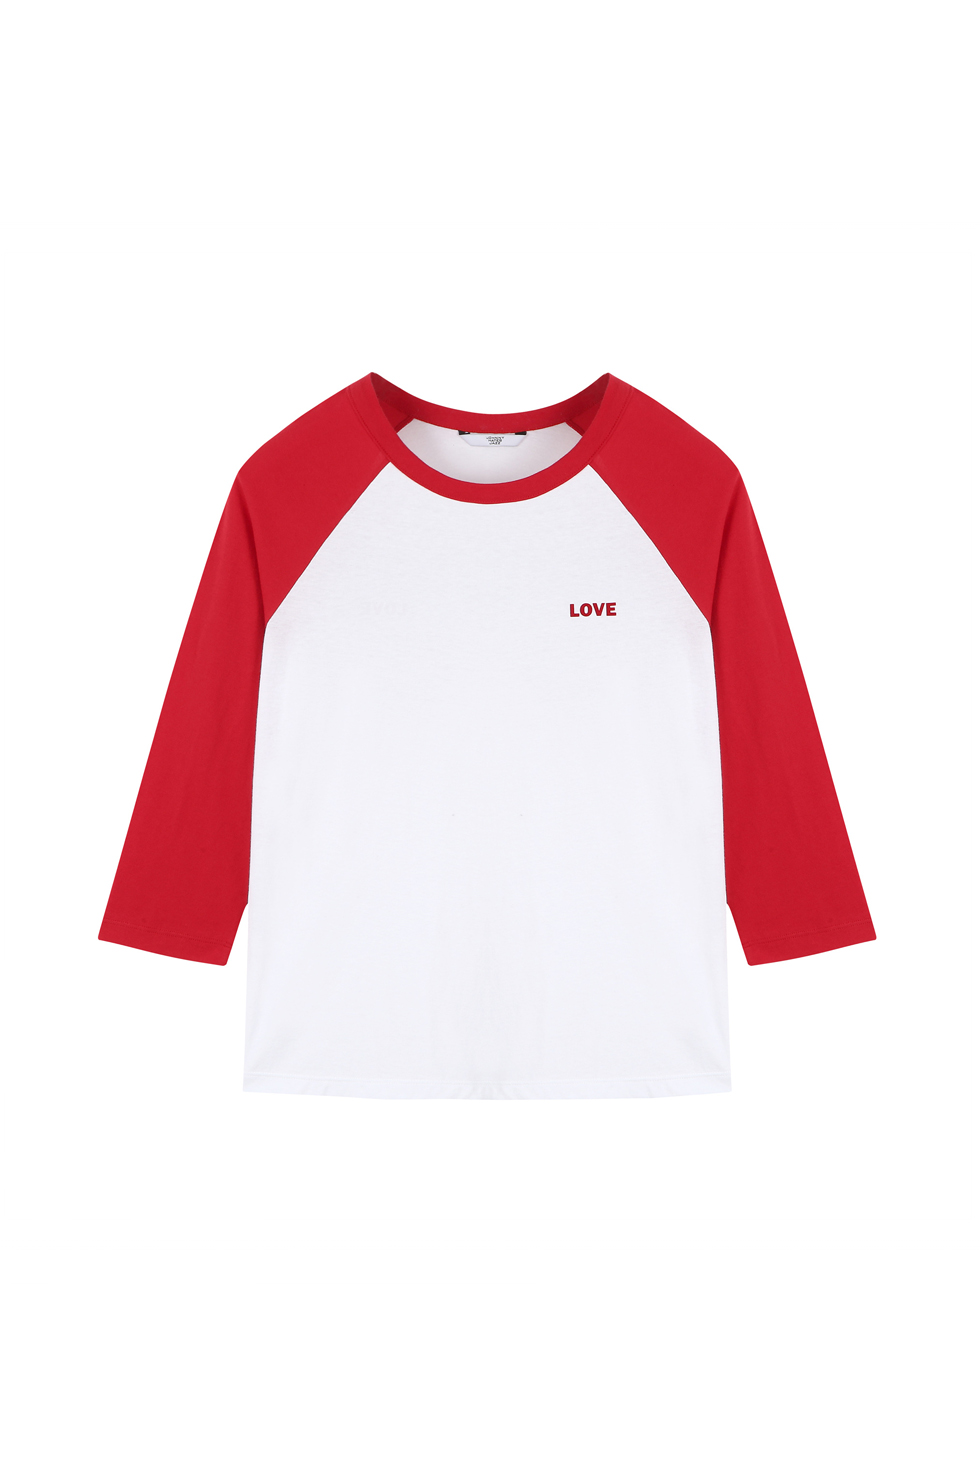 """LOVE"" RAGLAN T-SHIRTS - RED"